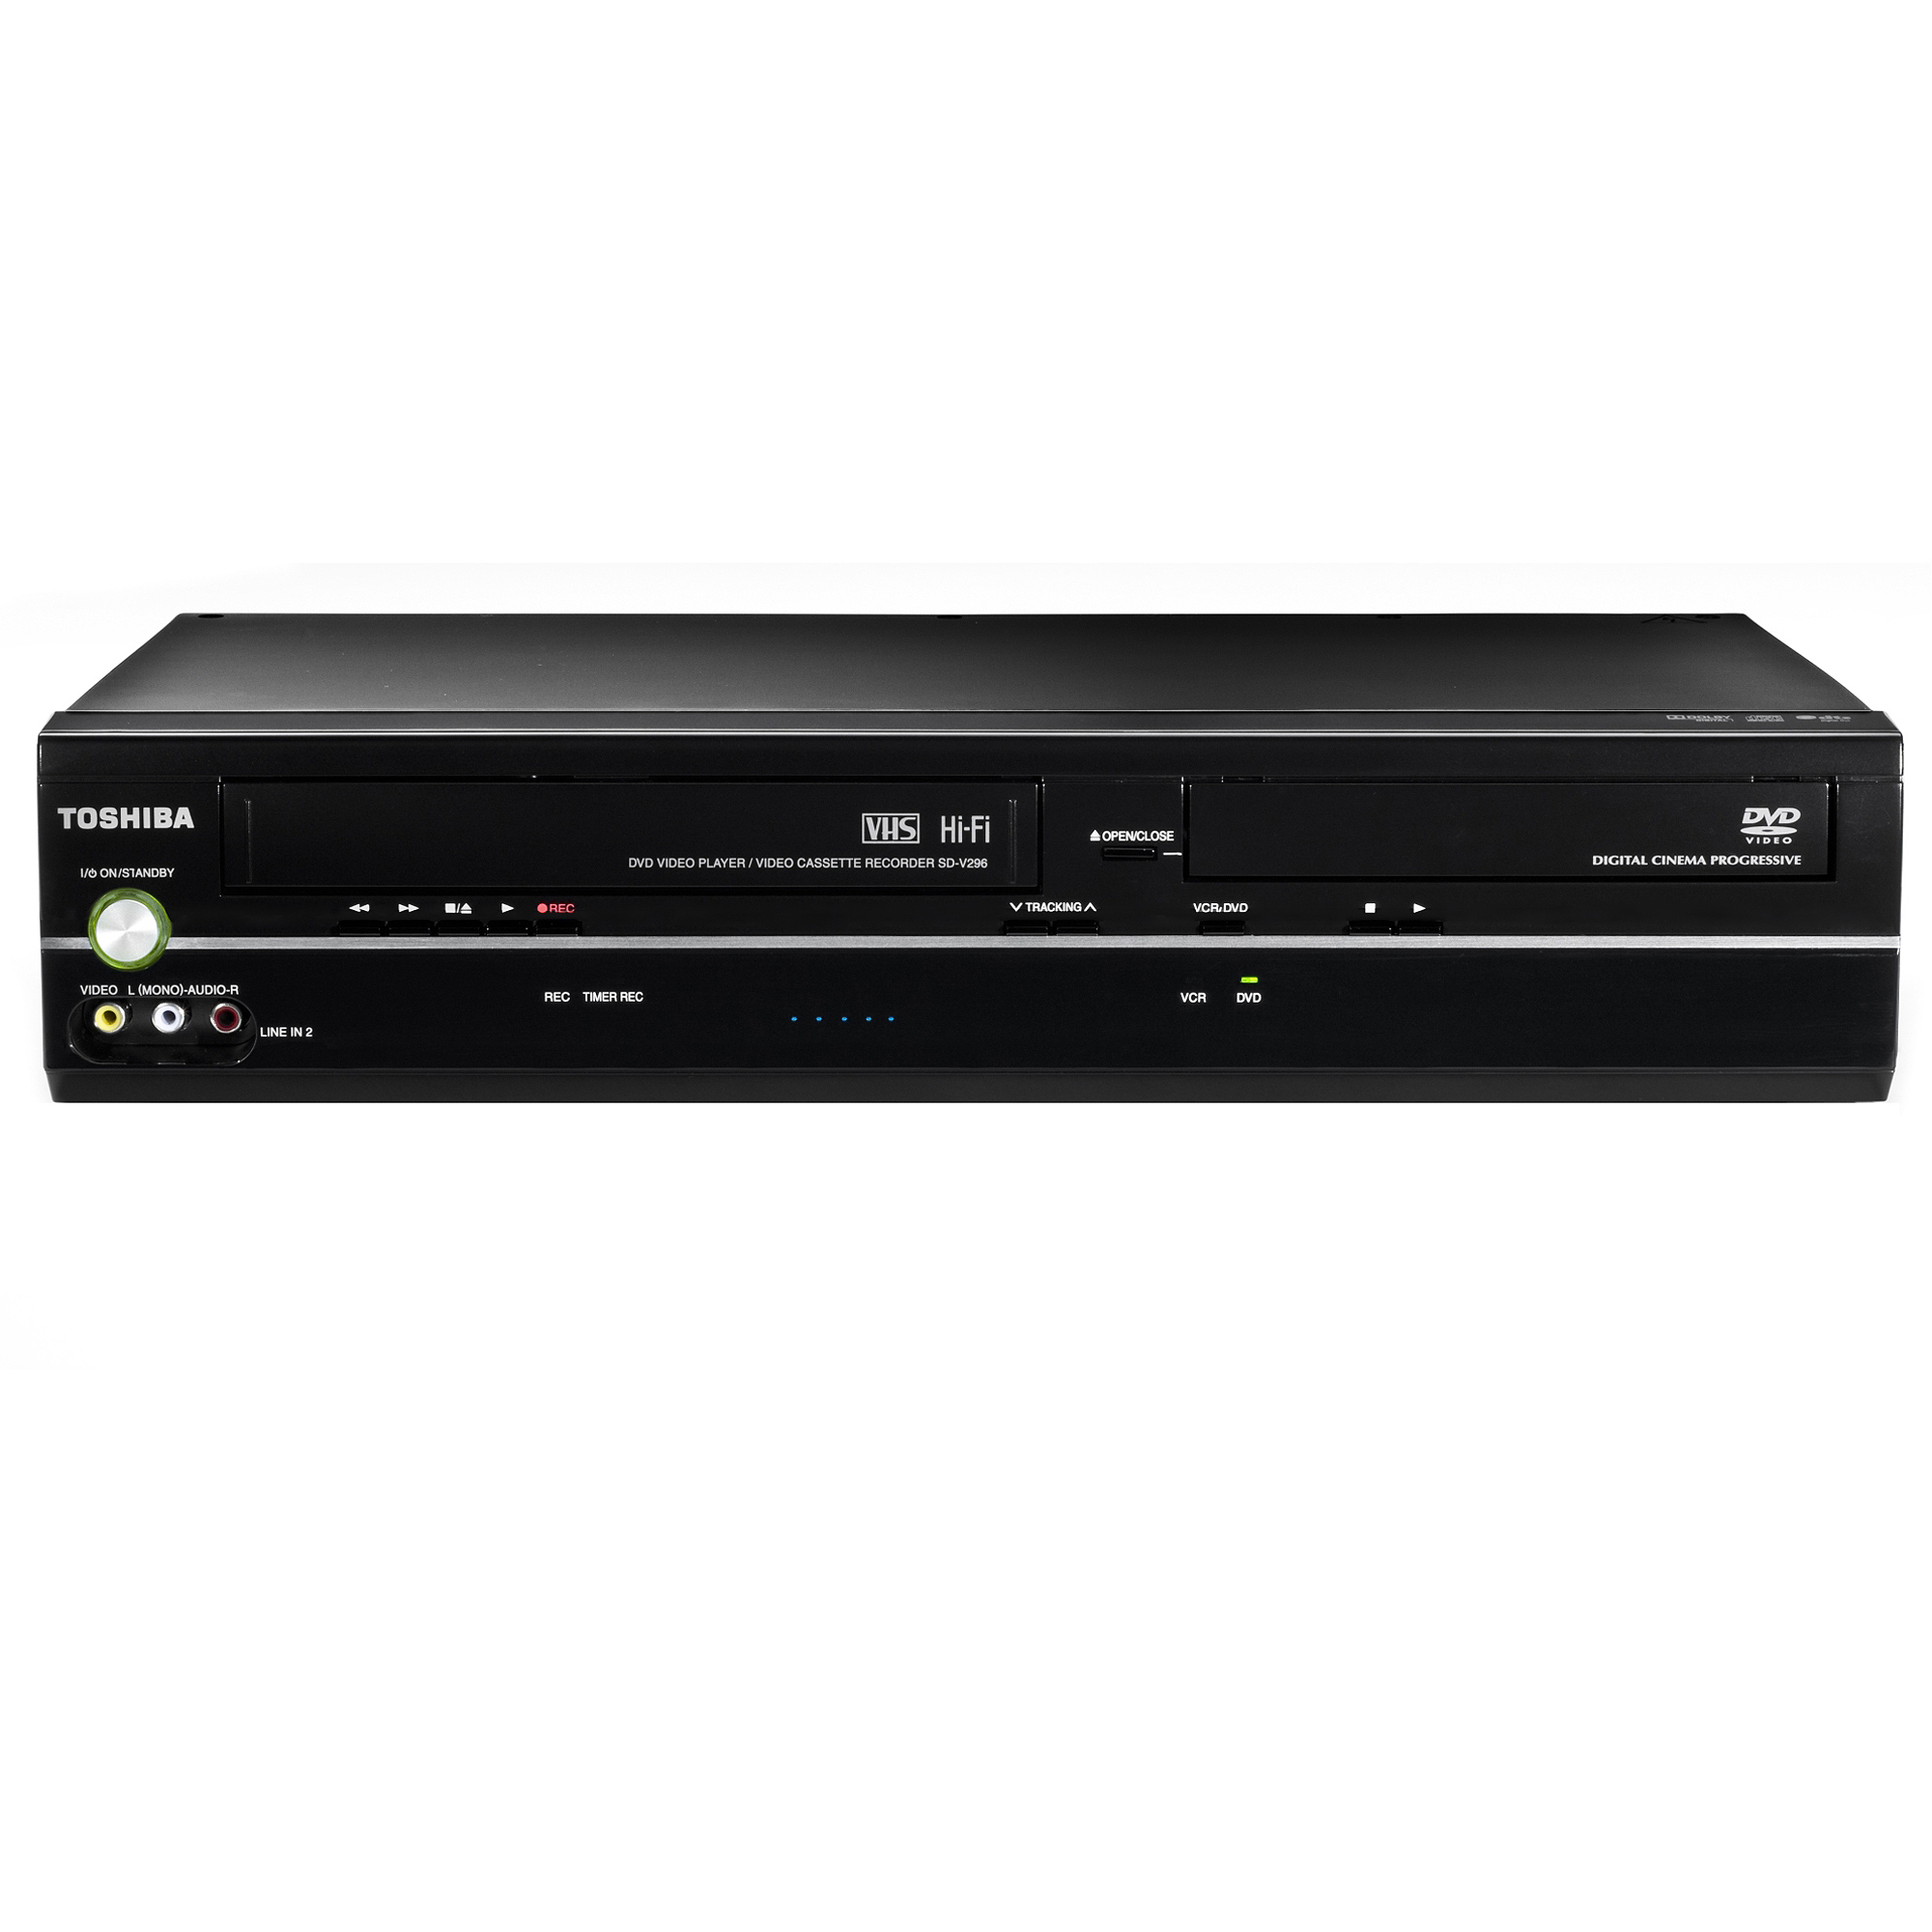 Toshiba SD-V296 Tunerless DVD VCR Combo Player, DVD player, VCR